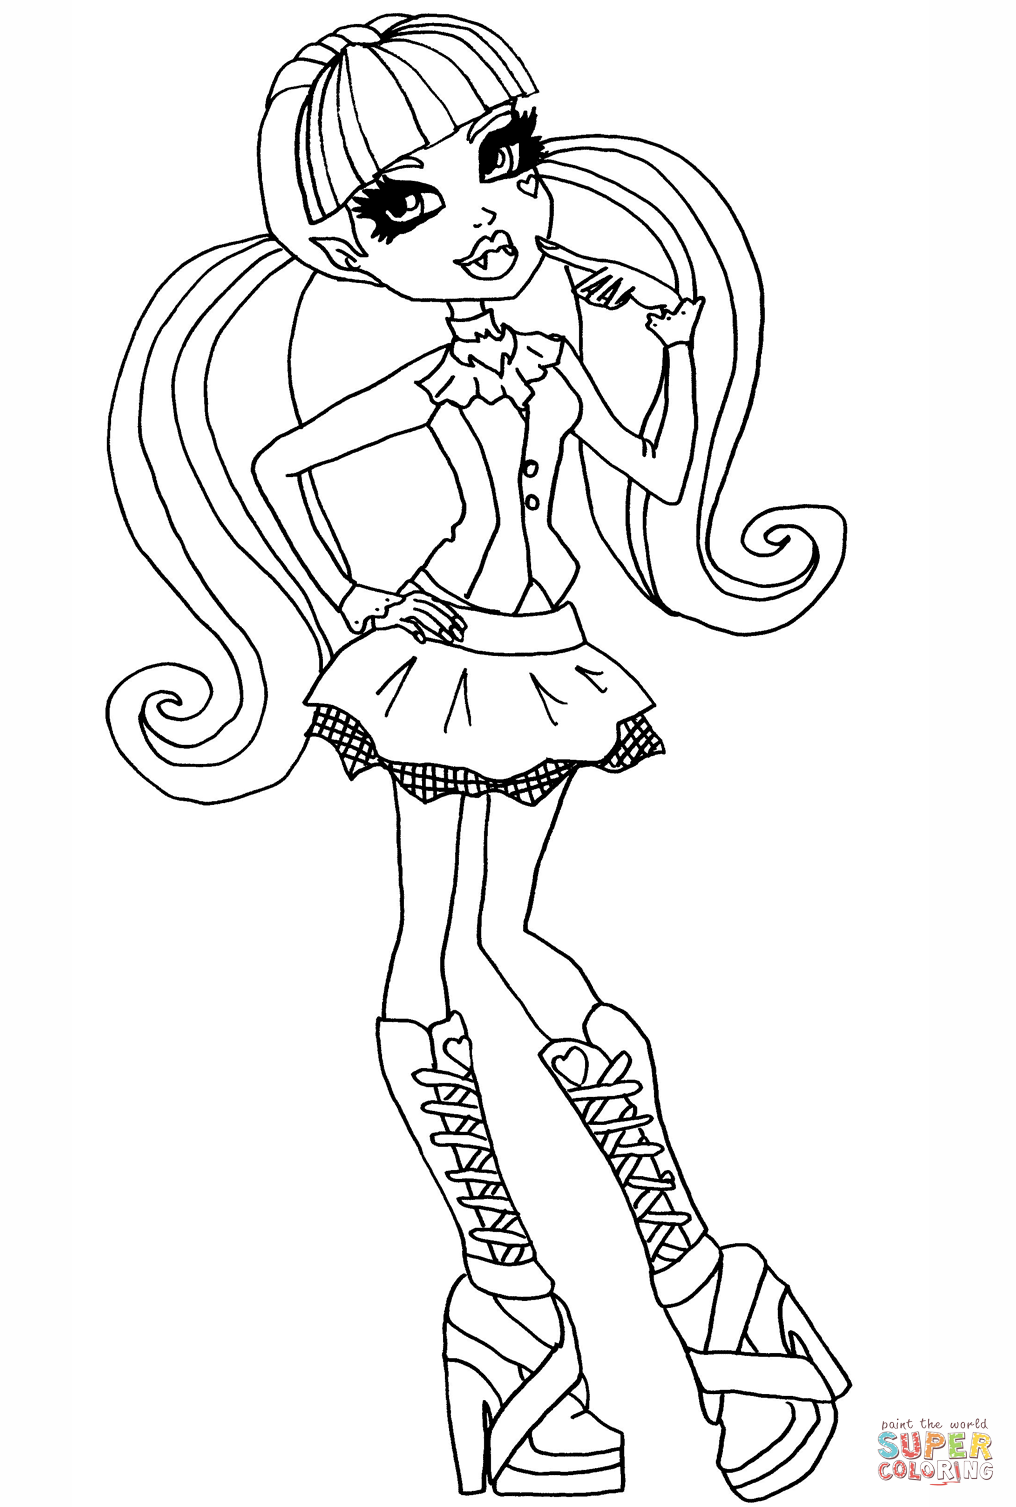 Monster High Draculaura coloring page | Free Printable Coloring ...